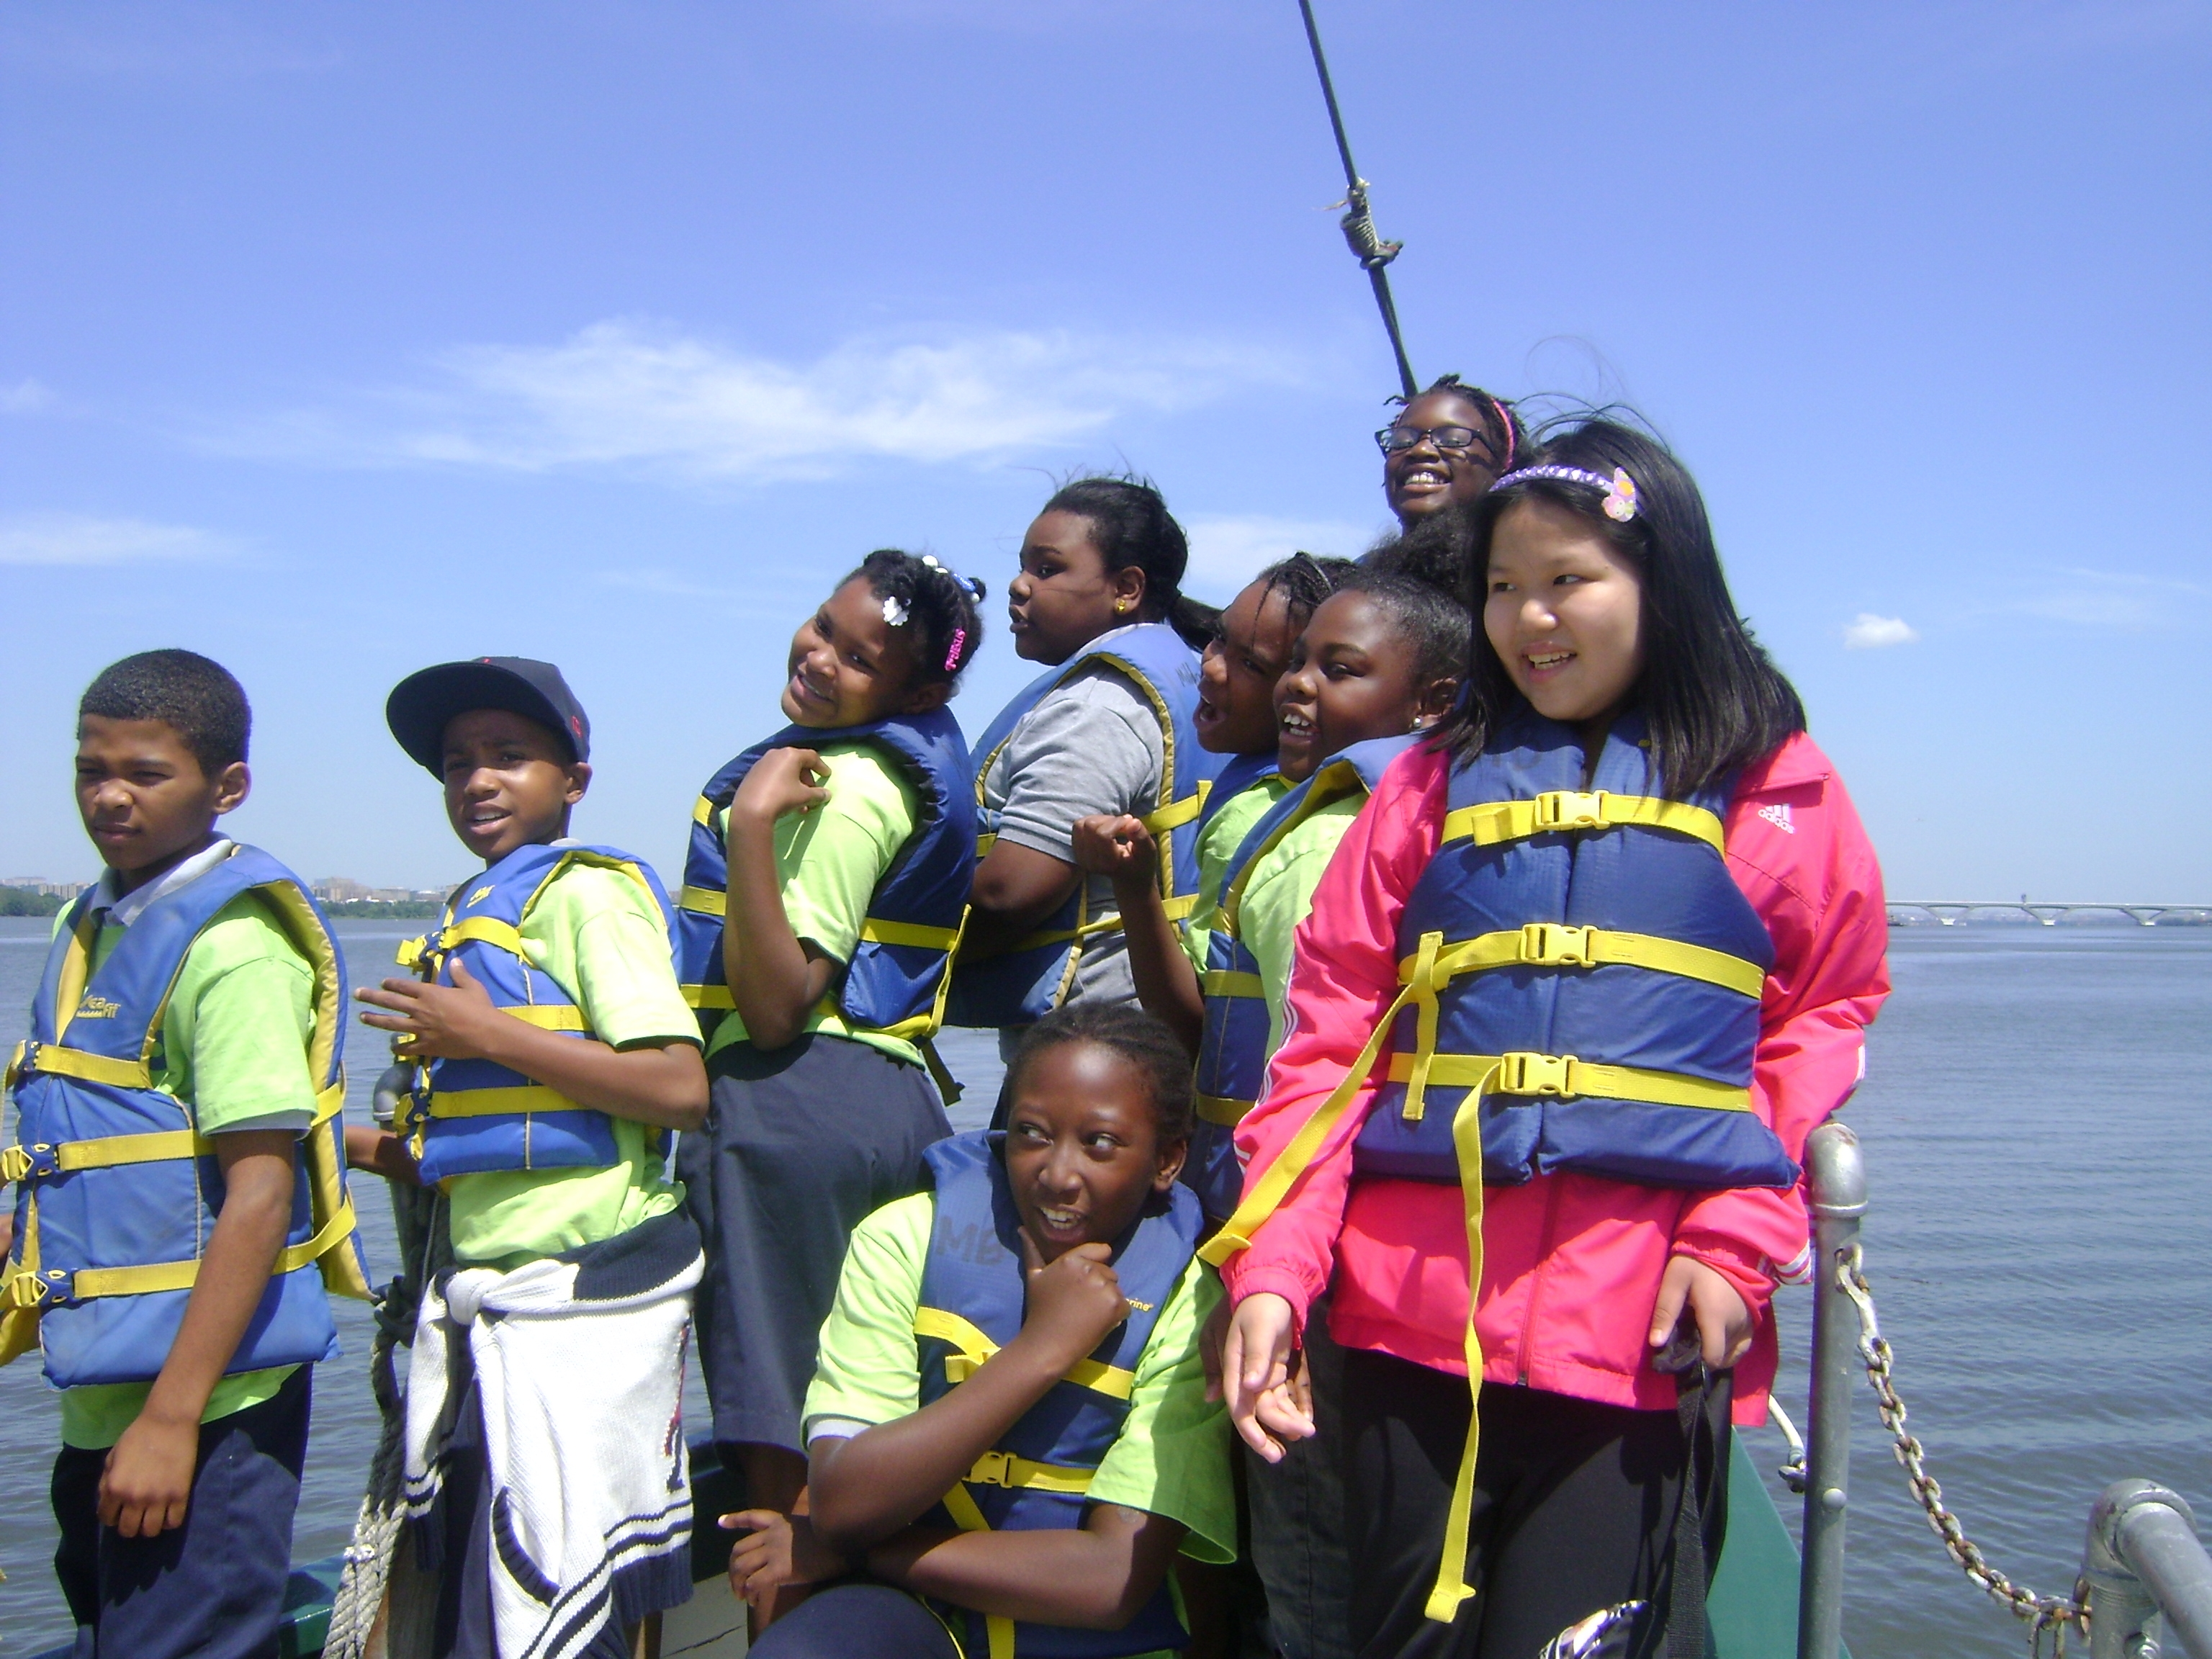 4th Graders enjoy the open water. Left to Right: Dajun Miller, Nazr Harper, Tonya Crumle, Kya Hopkins, Courtney Thompson, Tasia Bailey, Jennifer Zhou, Joniah Williams (behind), and Eugene O'Carroll (front center) (Photo: Eric Fishman).